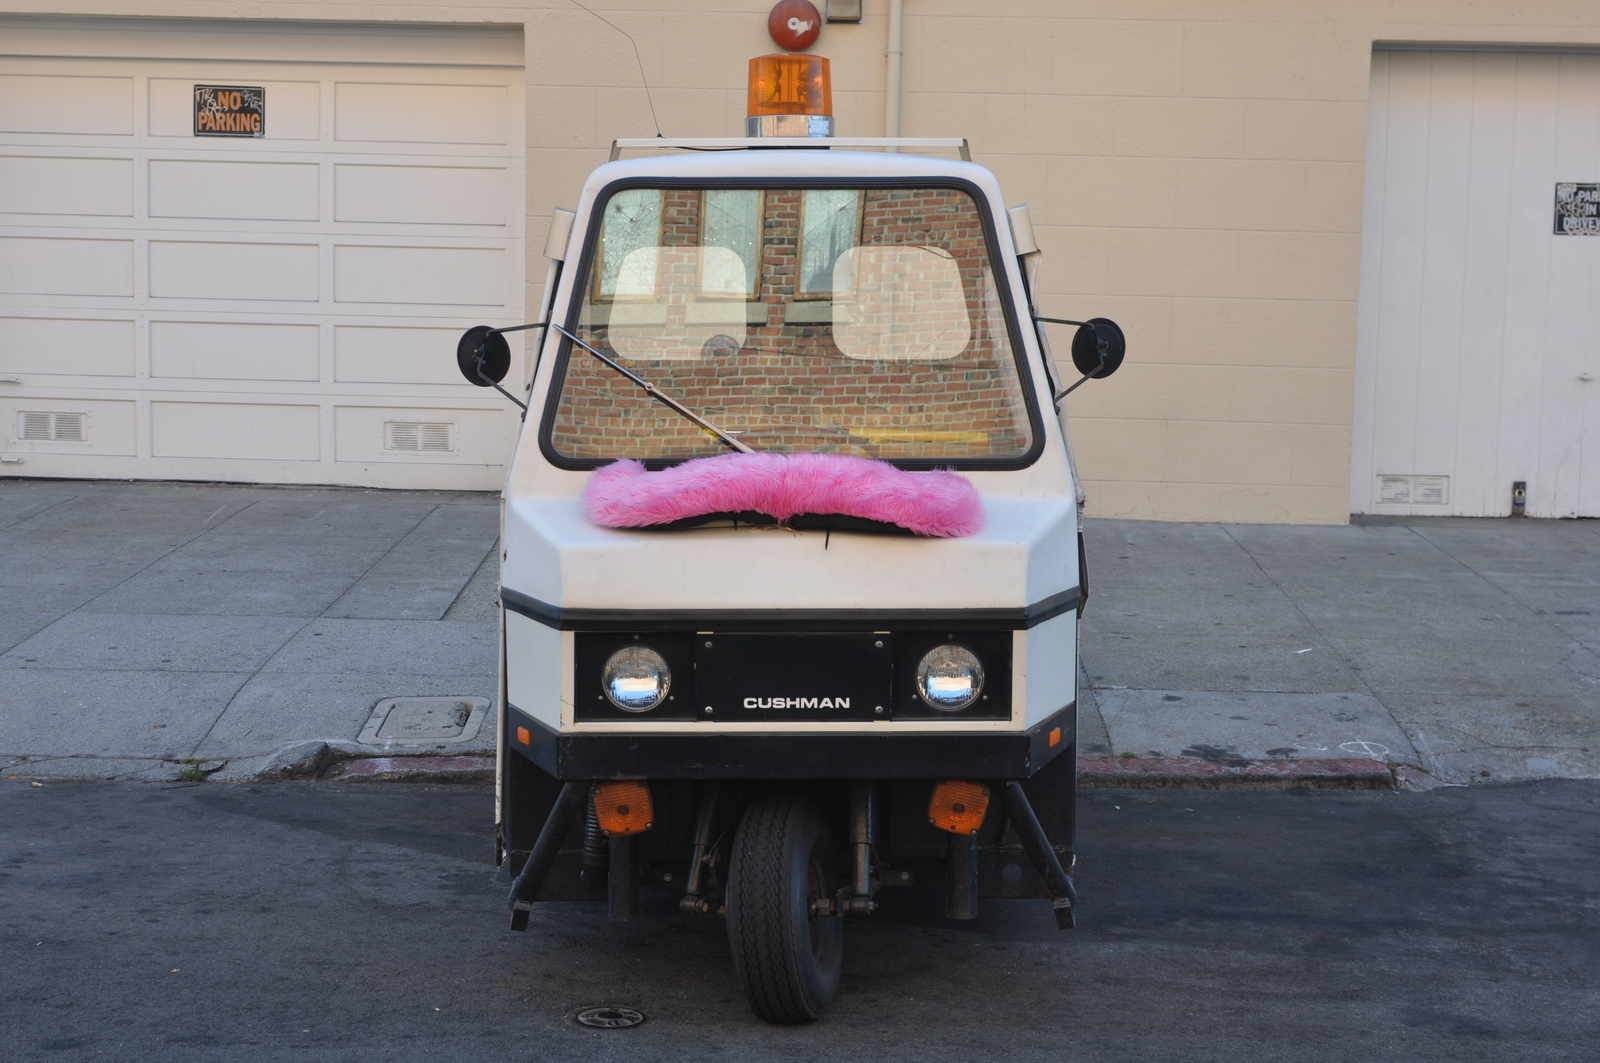 I Ve Been Seeing Cars Driving Around The City With Those Weird Pink Fuzzy Mustaches On Their Grills For Some Months Now Figured It Was Just A Cancer